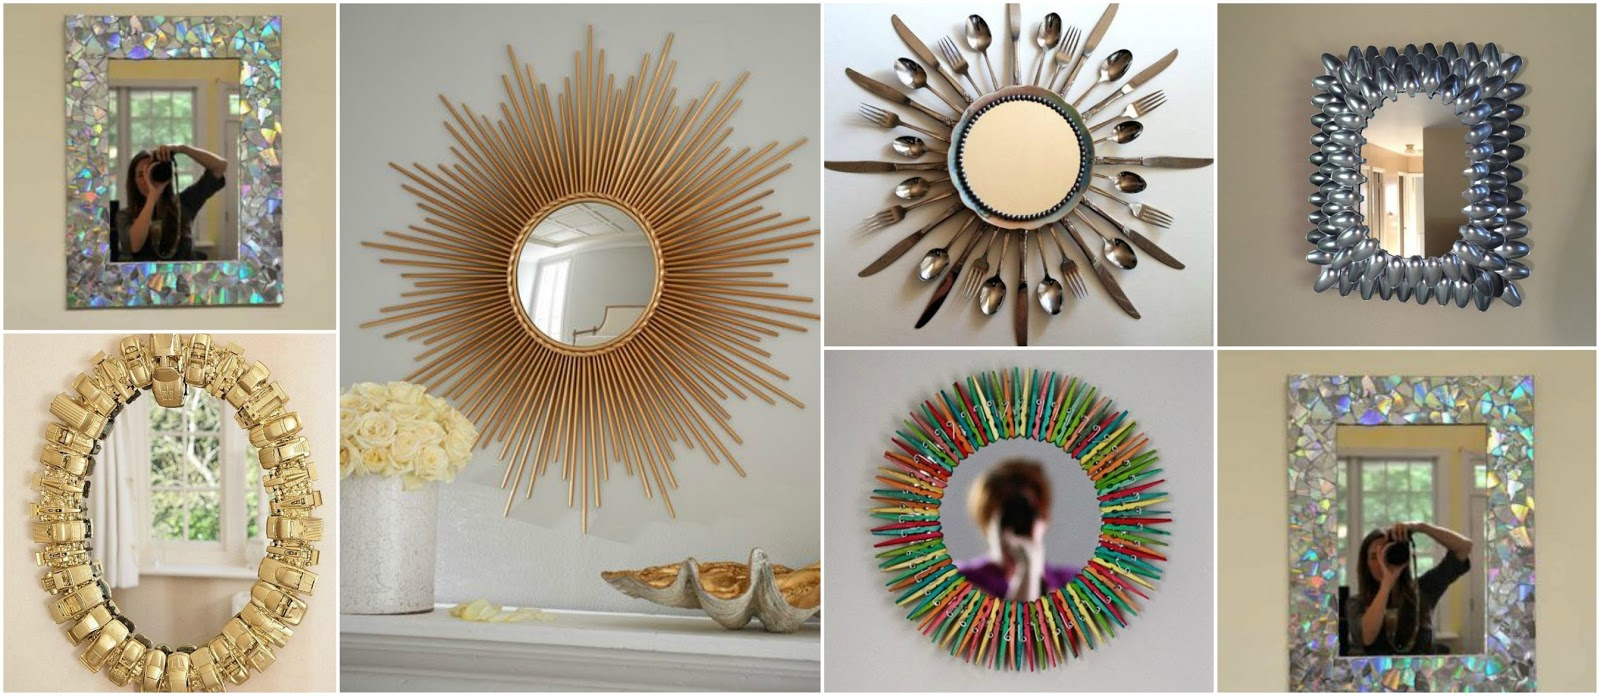 11 ideas originales para decorar espejos en casa lodijoella for Ideas originales para casa